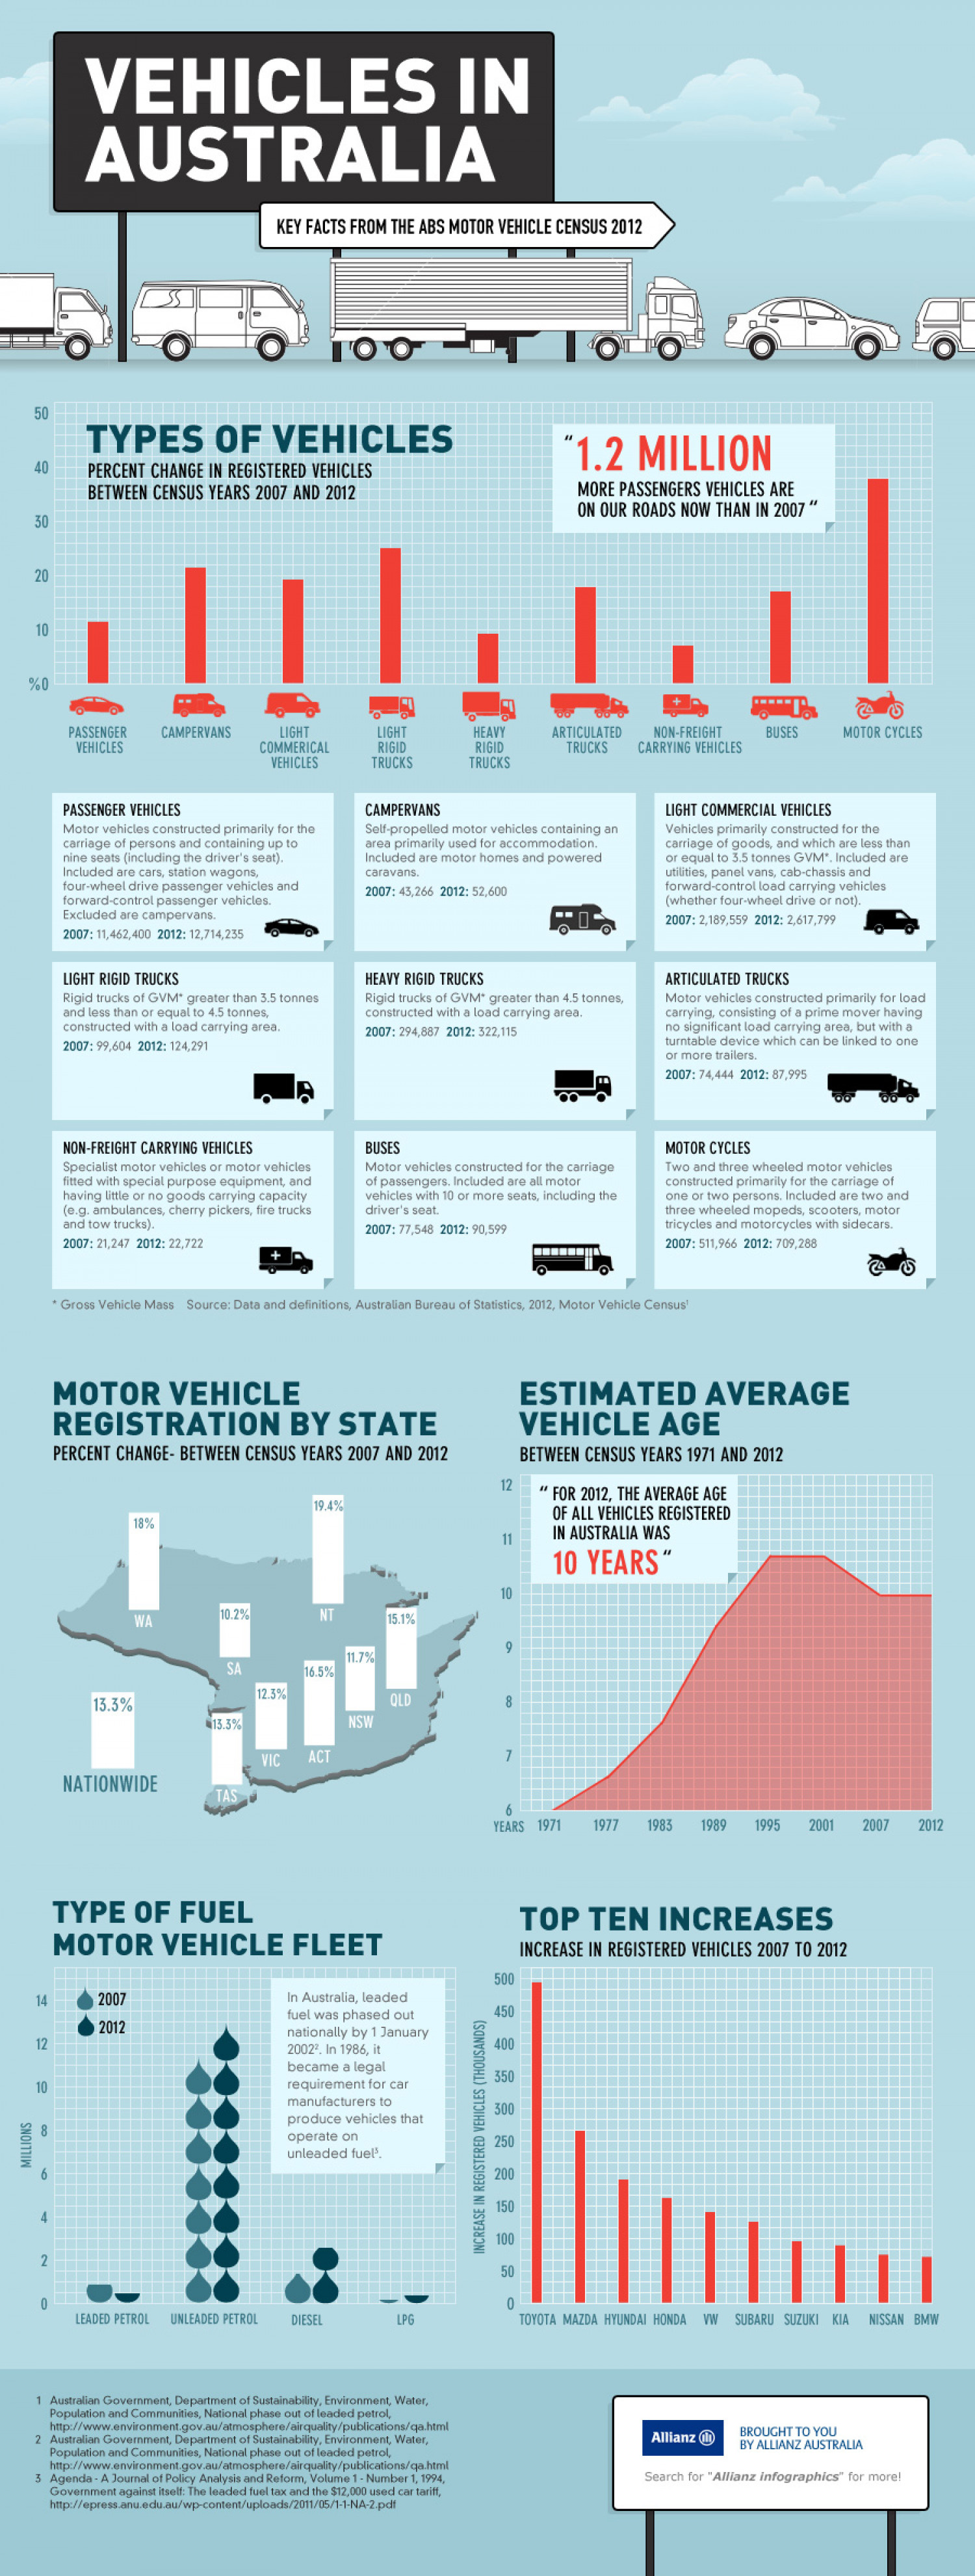 Vehicles in Australia Infographic